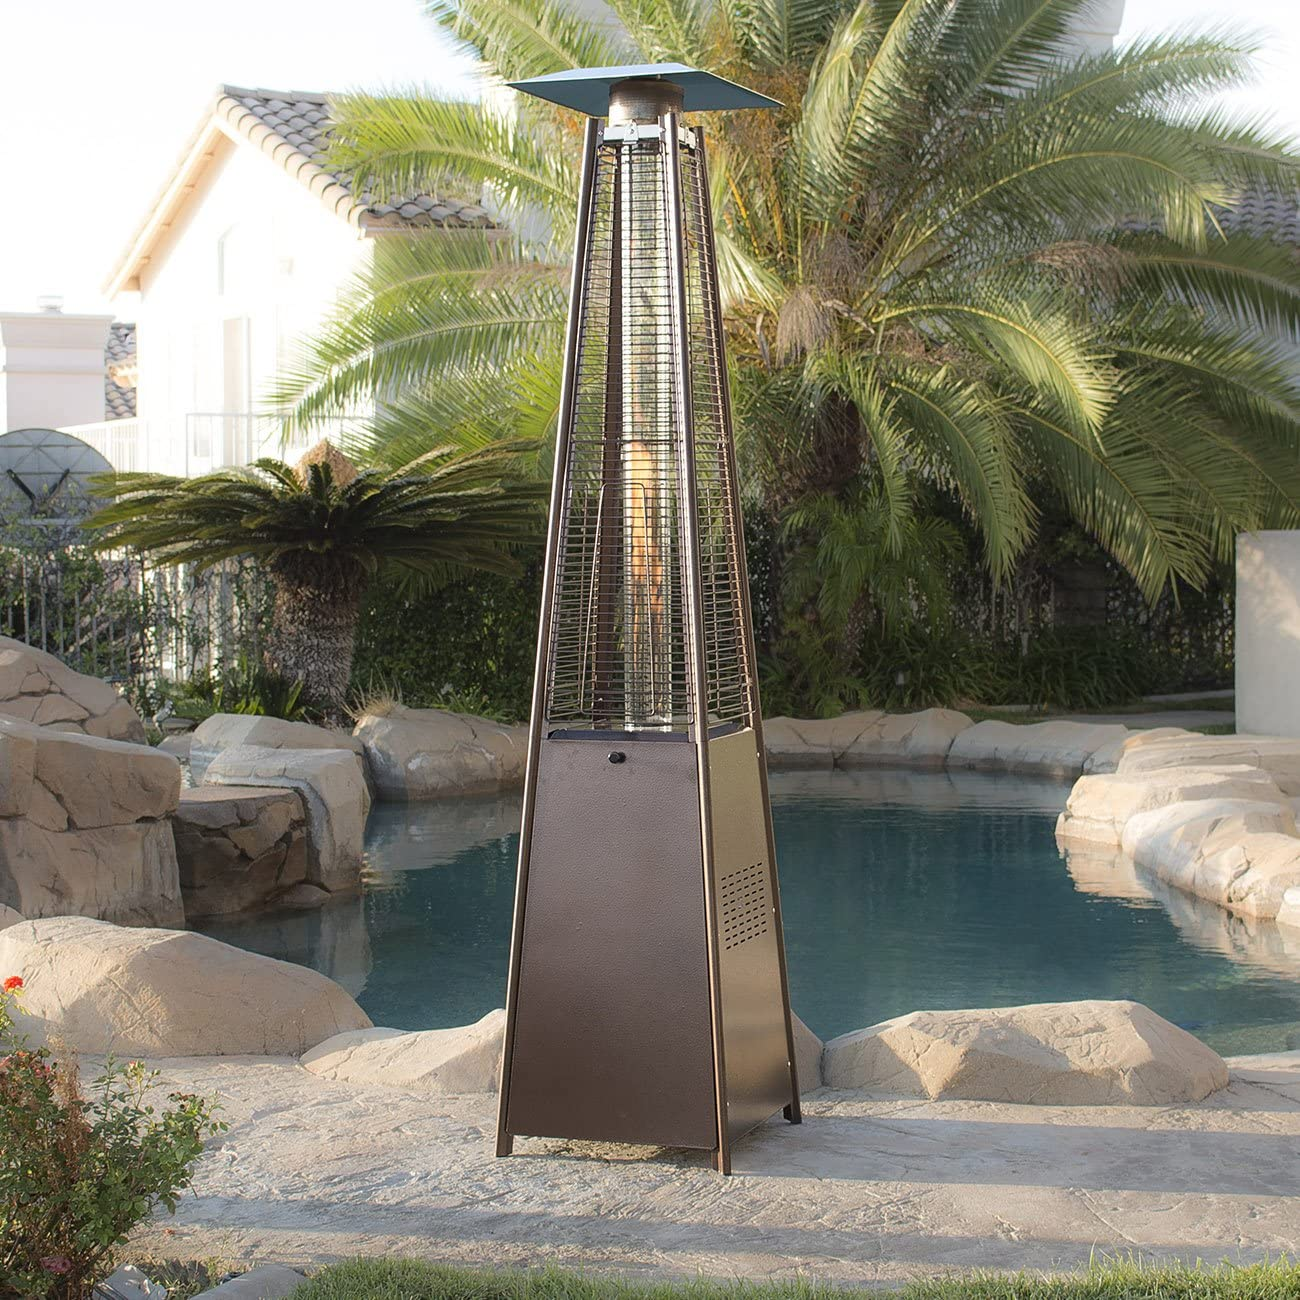 Belleze Outdoor Patio Heater Pyramid w Dancing Flame with Wheel, CSA Certified, 42,000 BTU Heat- Hammered Bronze